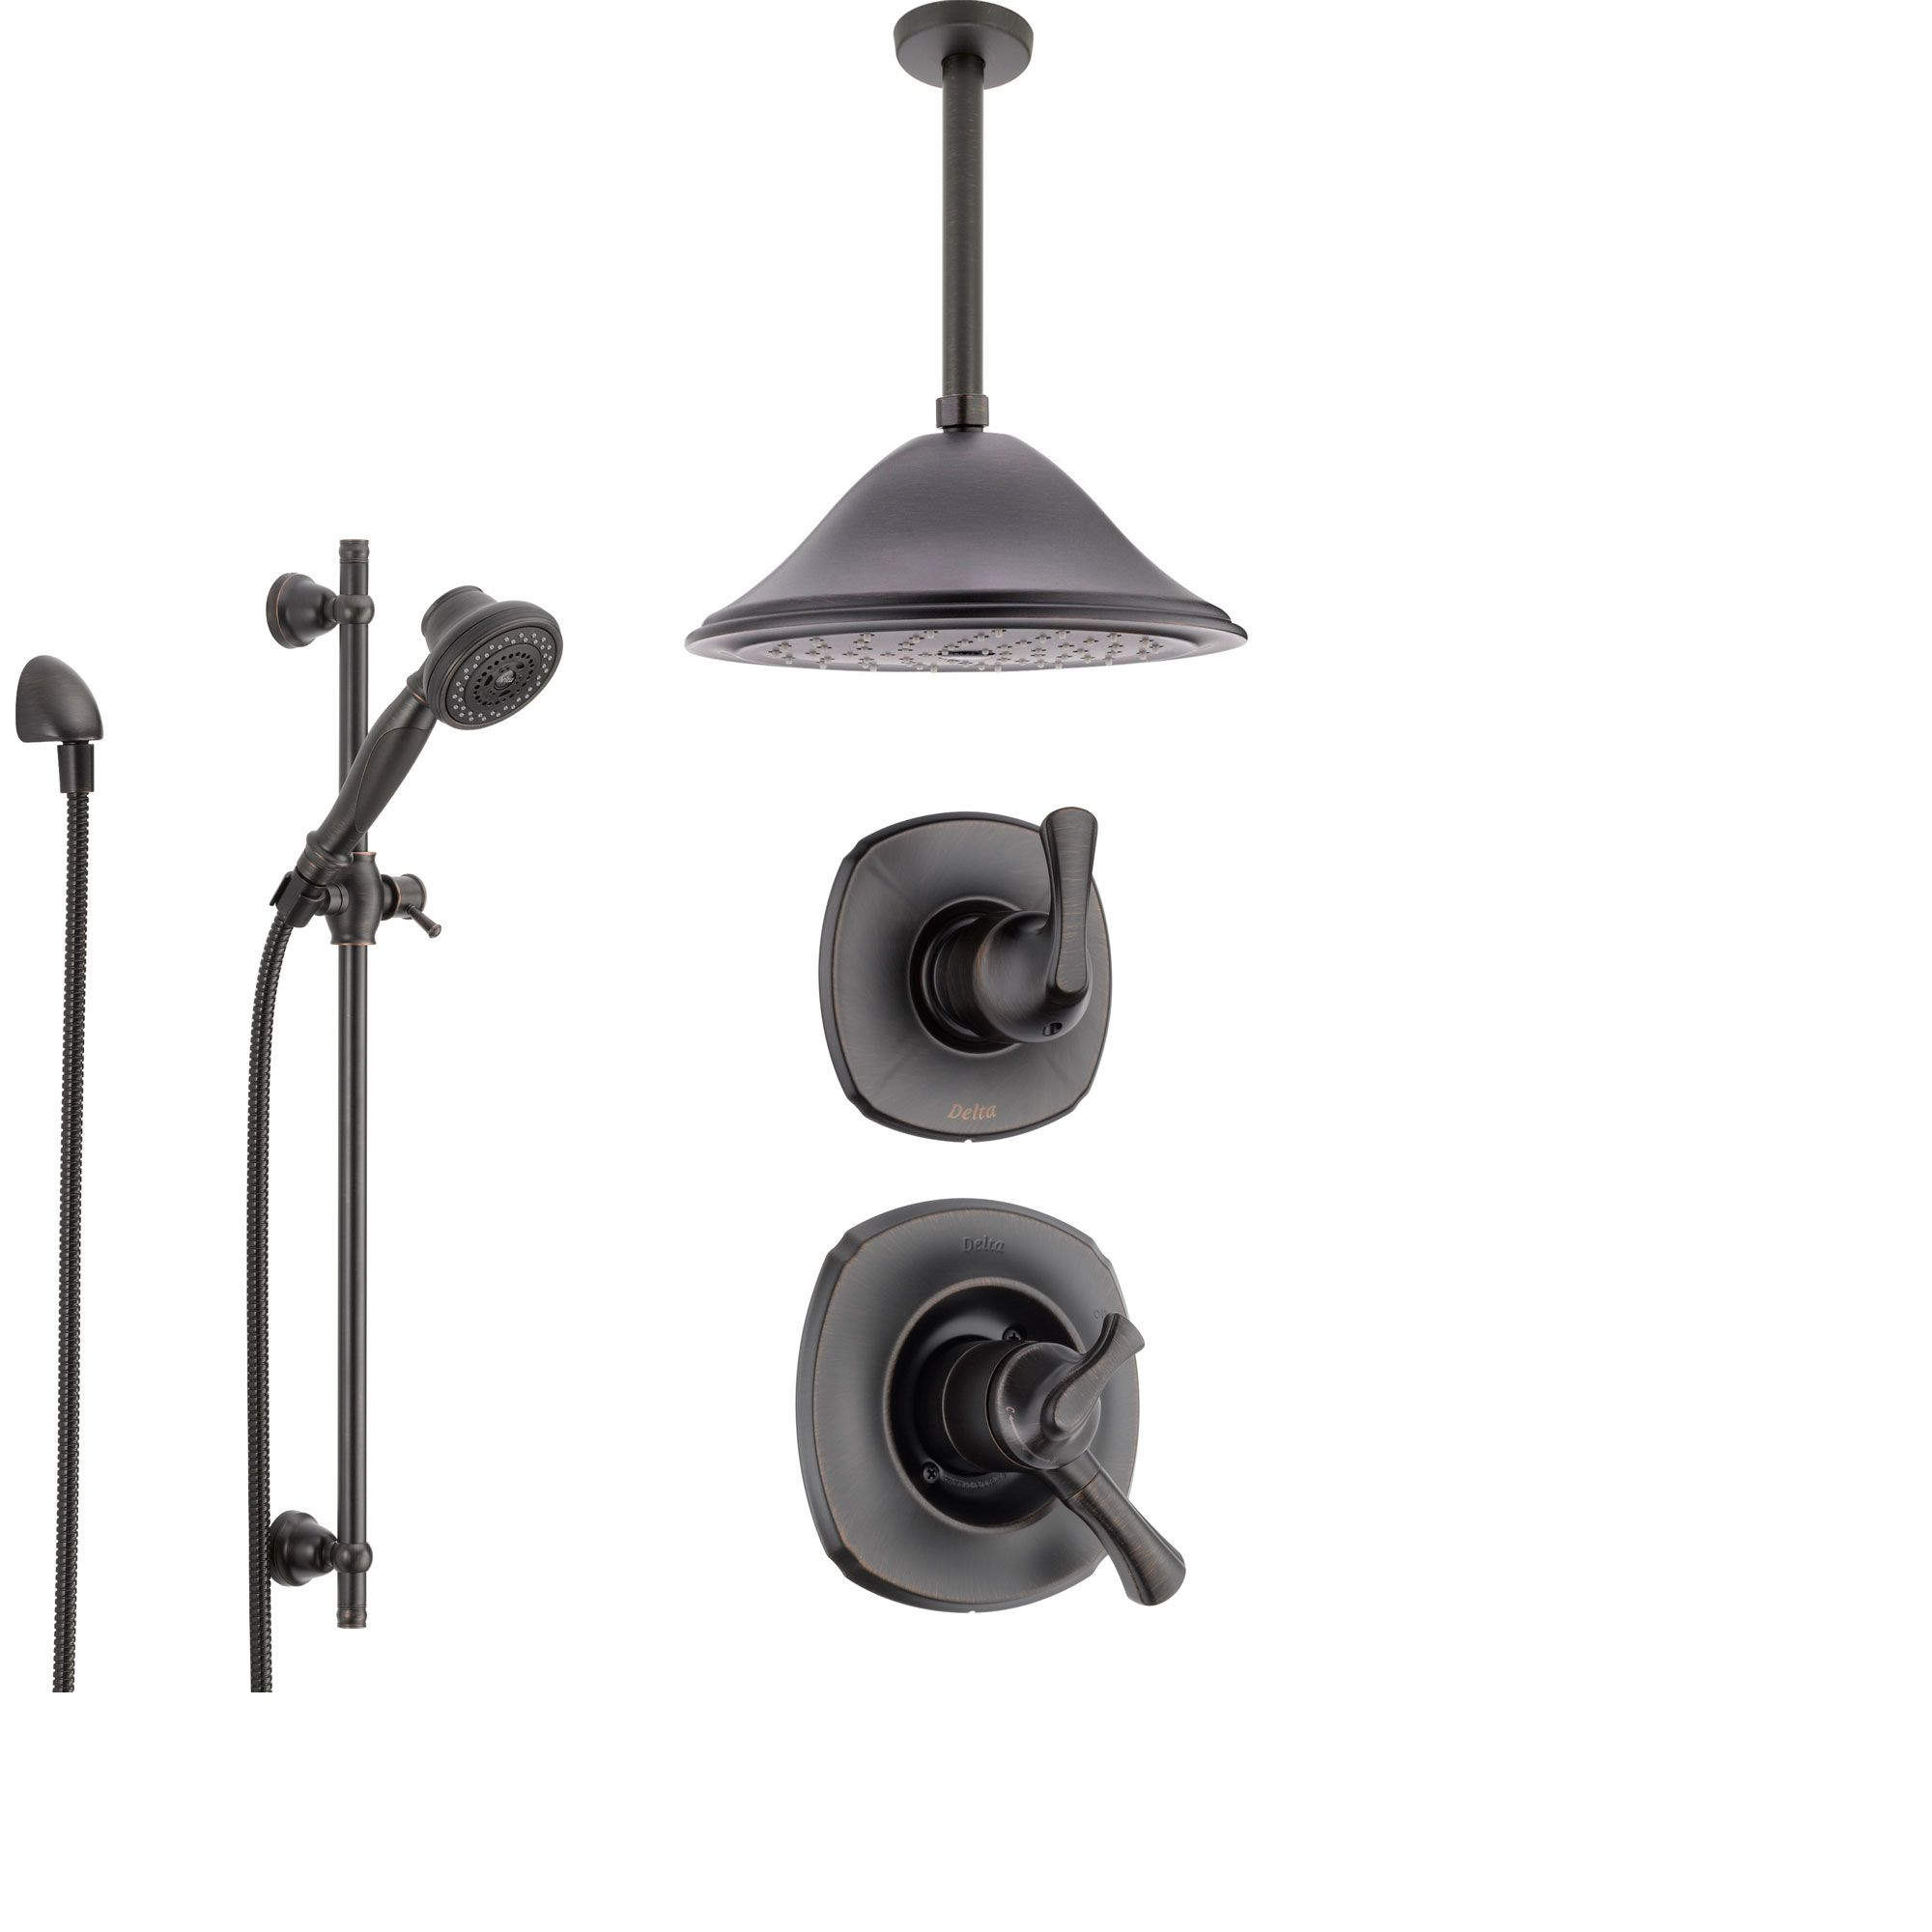 Delta Addison Venetian Bronze Shower System with Dual Control ...